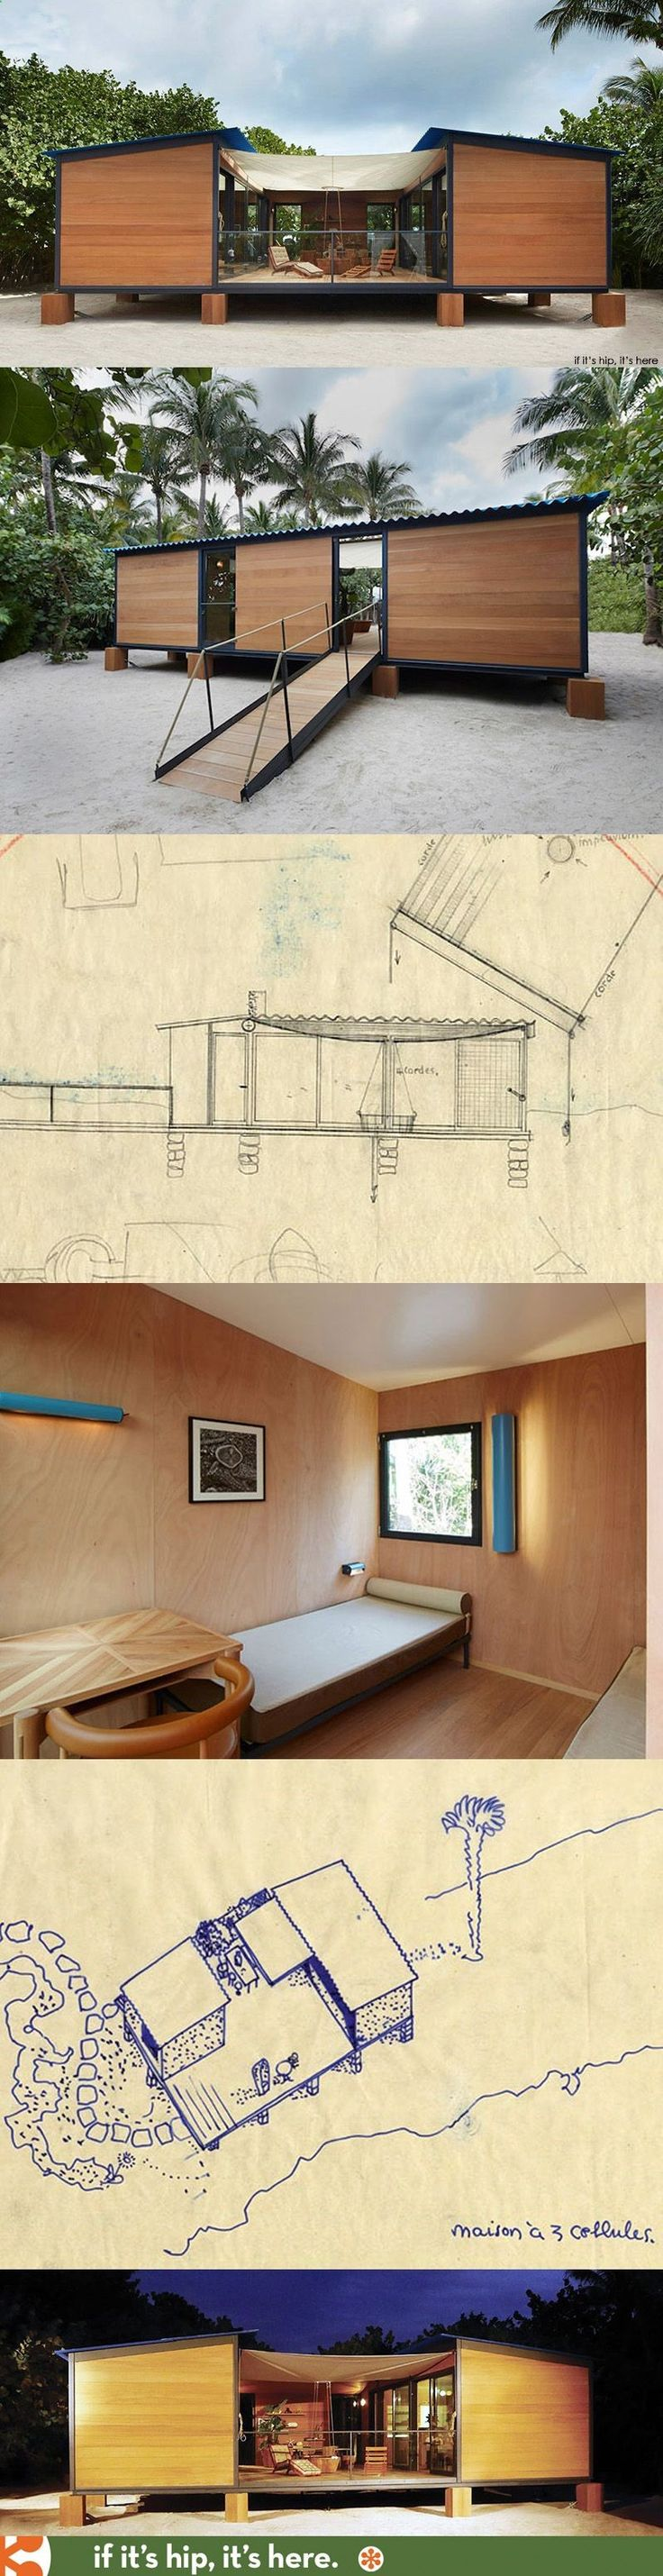 Container House - Originally conceived in 1934, Charlotte Perriands chic beach front holiday home, La Maison au bord de leau, was recreated by Louis Vuitton for Design Miami using the original archival sketches. Who Else Wants Simple Step-By-Step Plans To Design And Build A Container Home From Scratch?